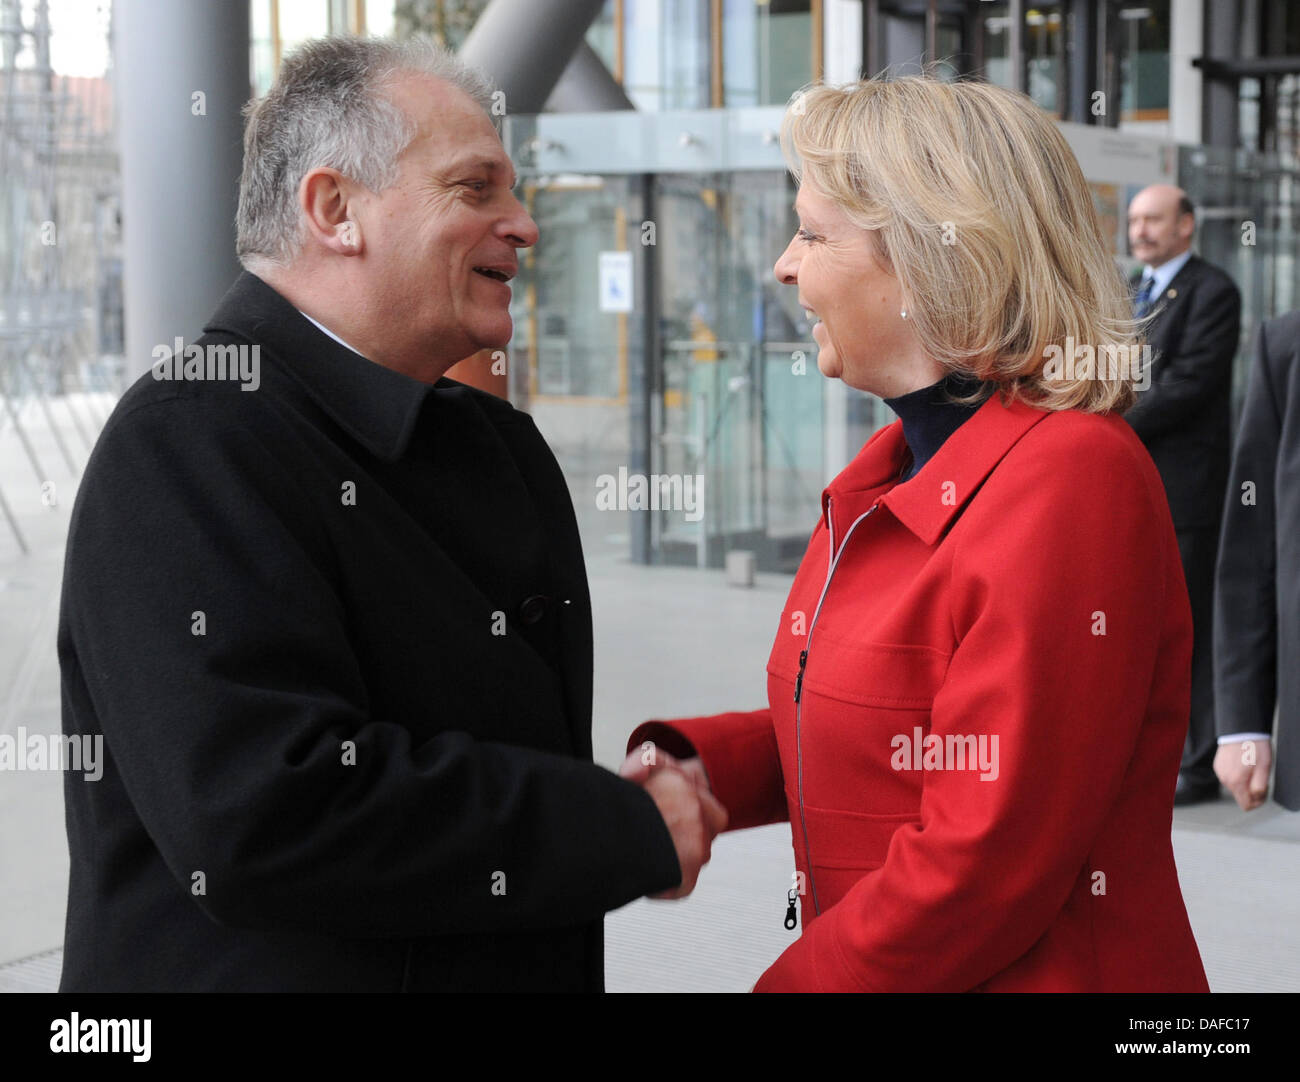 North Rhine-Westphalia's Minister President Hannelore Kraft (SPD) greets President of the Federal Council of - Stock Image